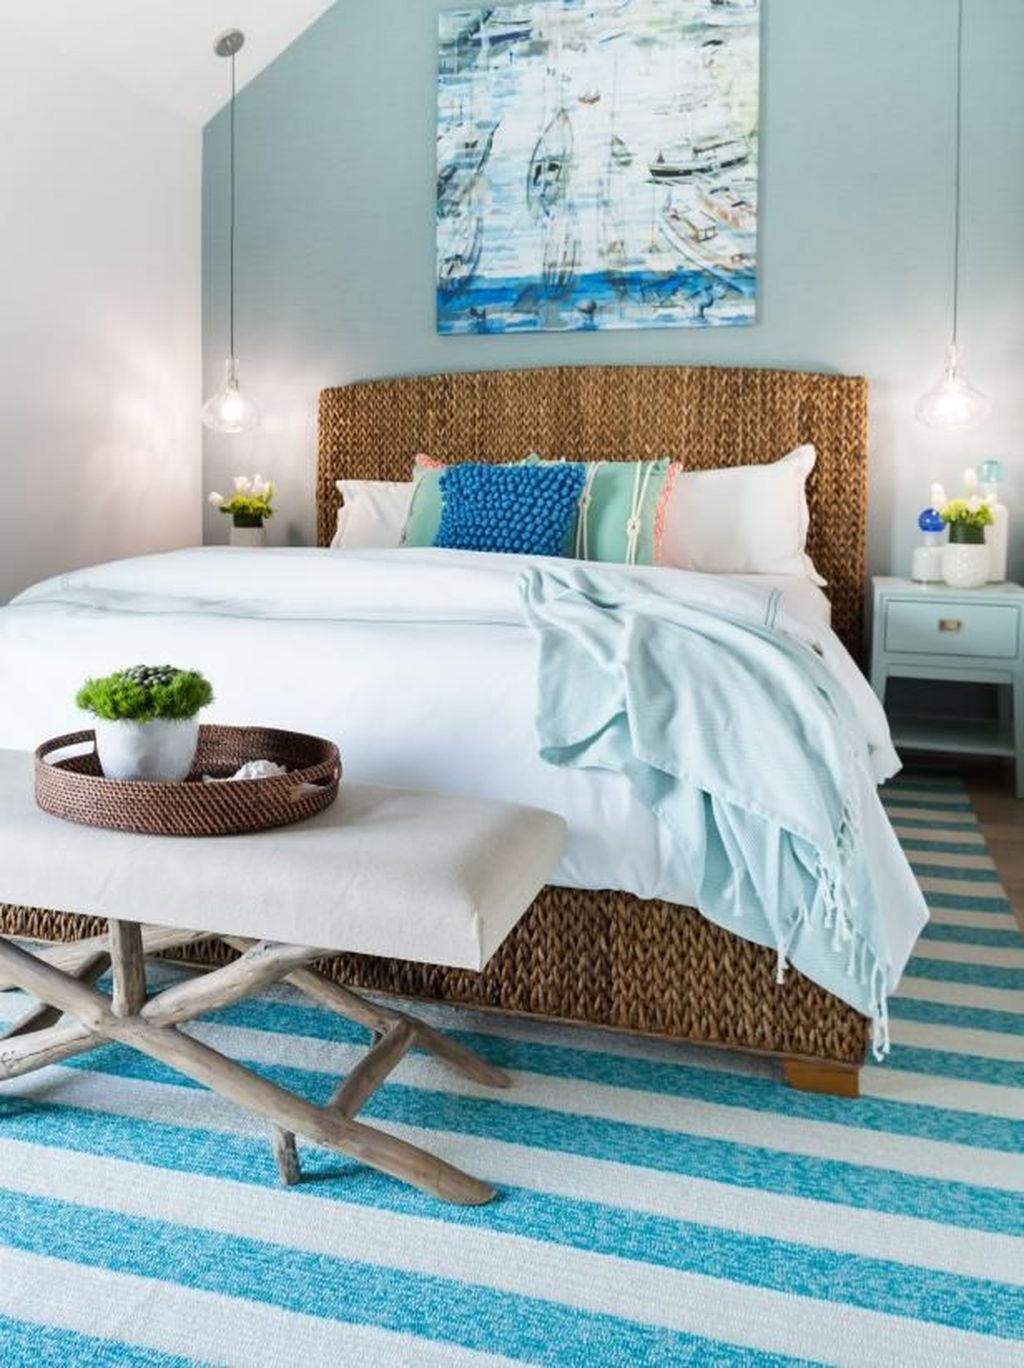 The Best Lake House Bedroom Design And Decor Ideas 20